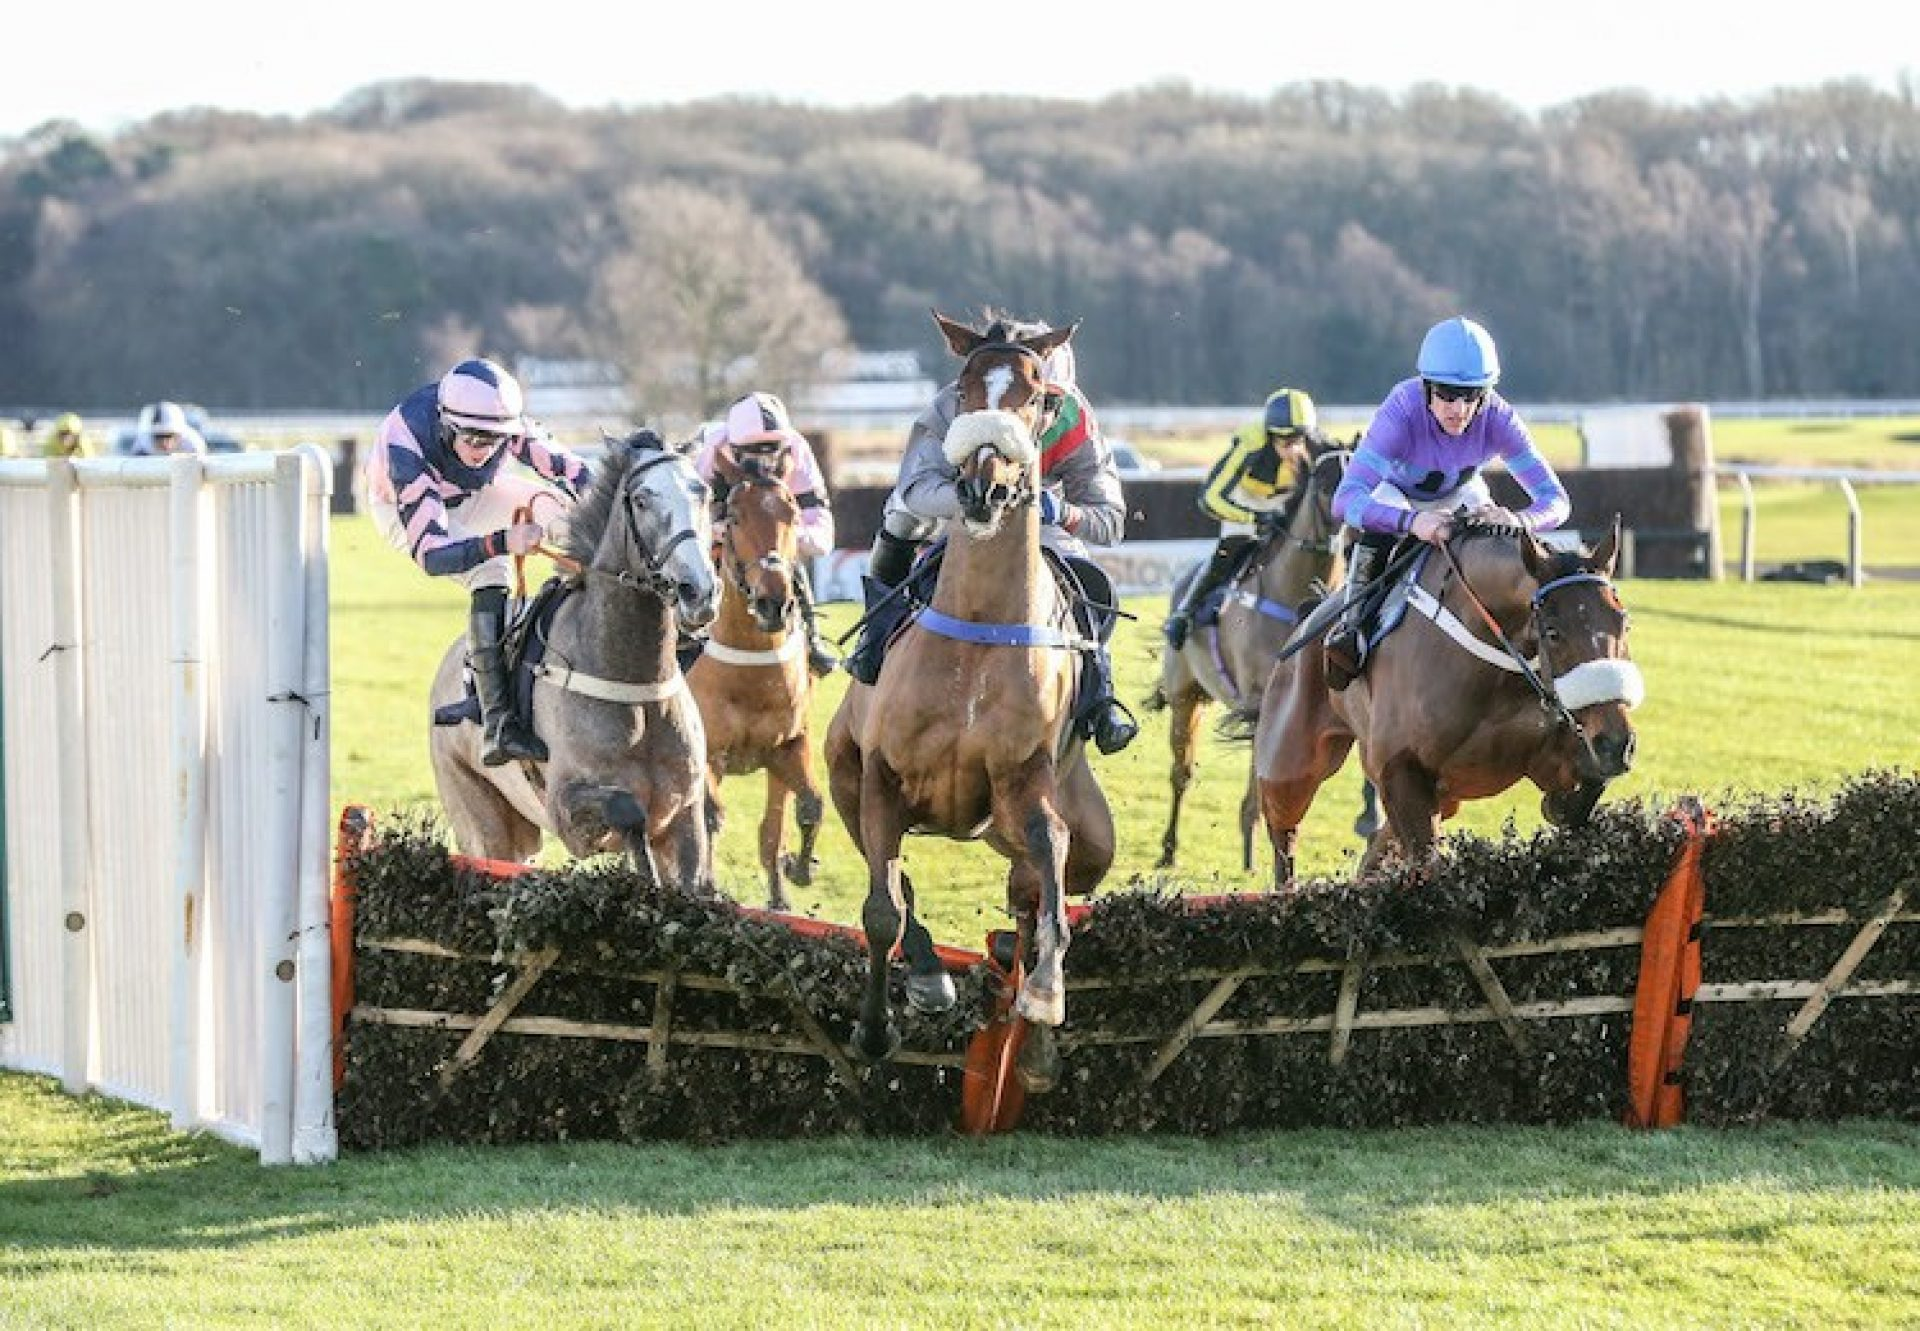 The Great Getaway (Getaway) winning a novice hurdle at Newcastle